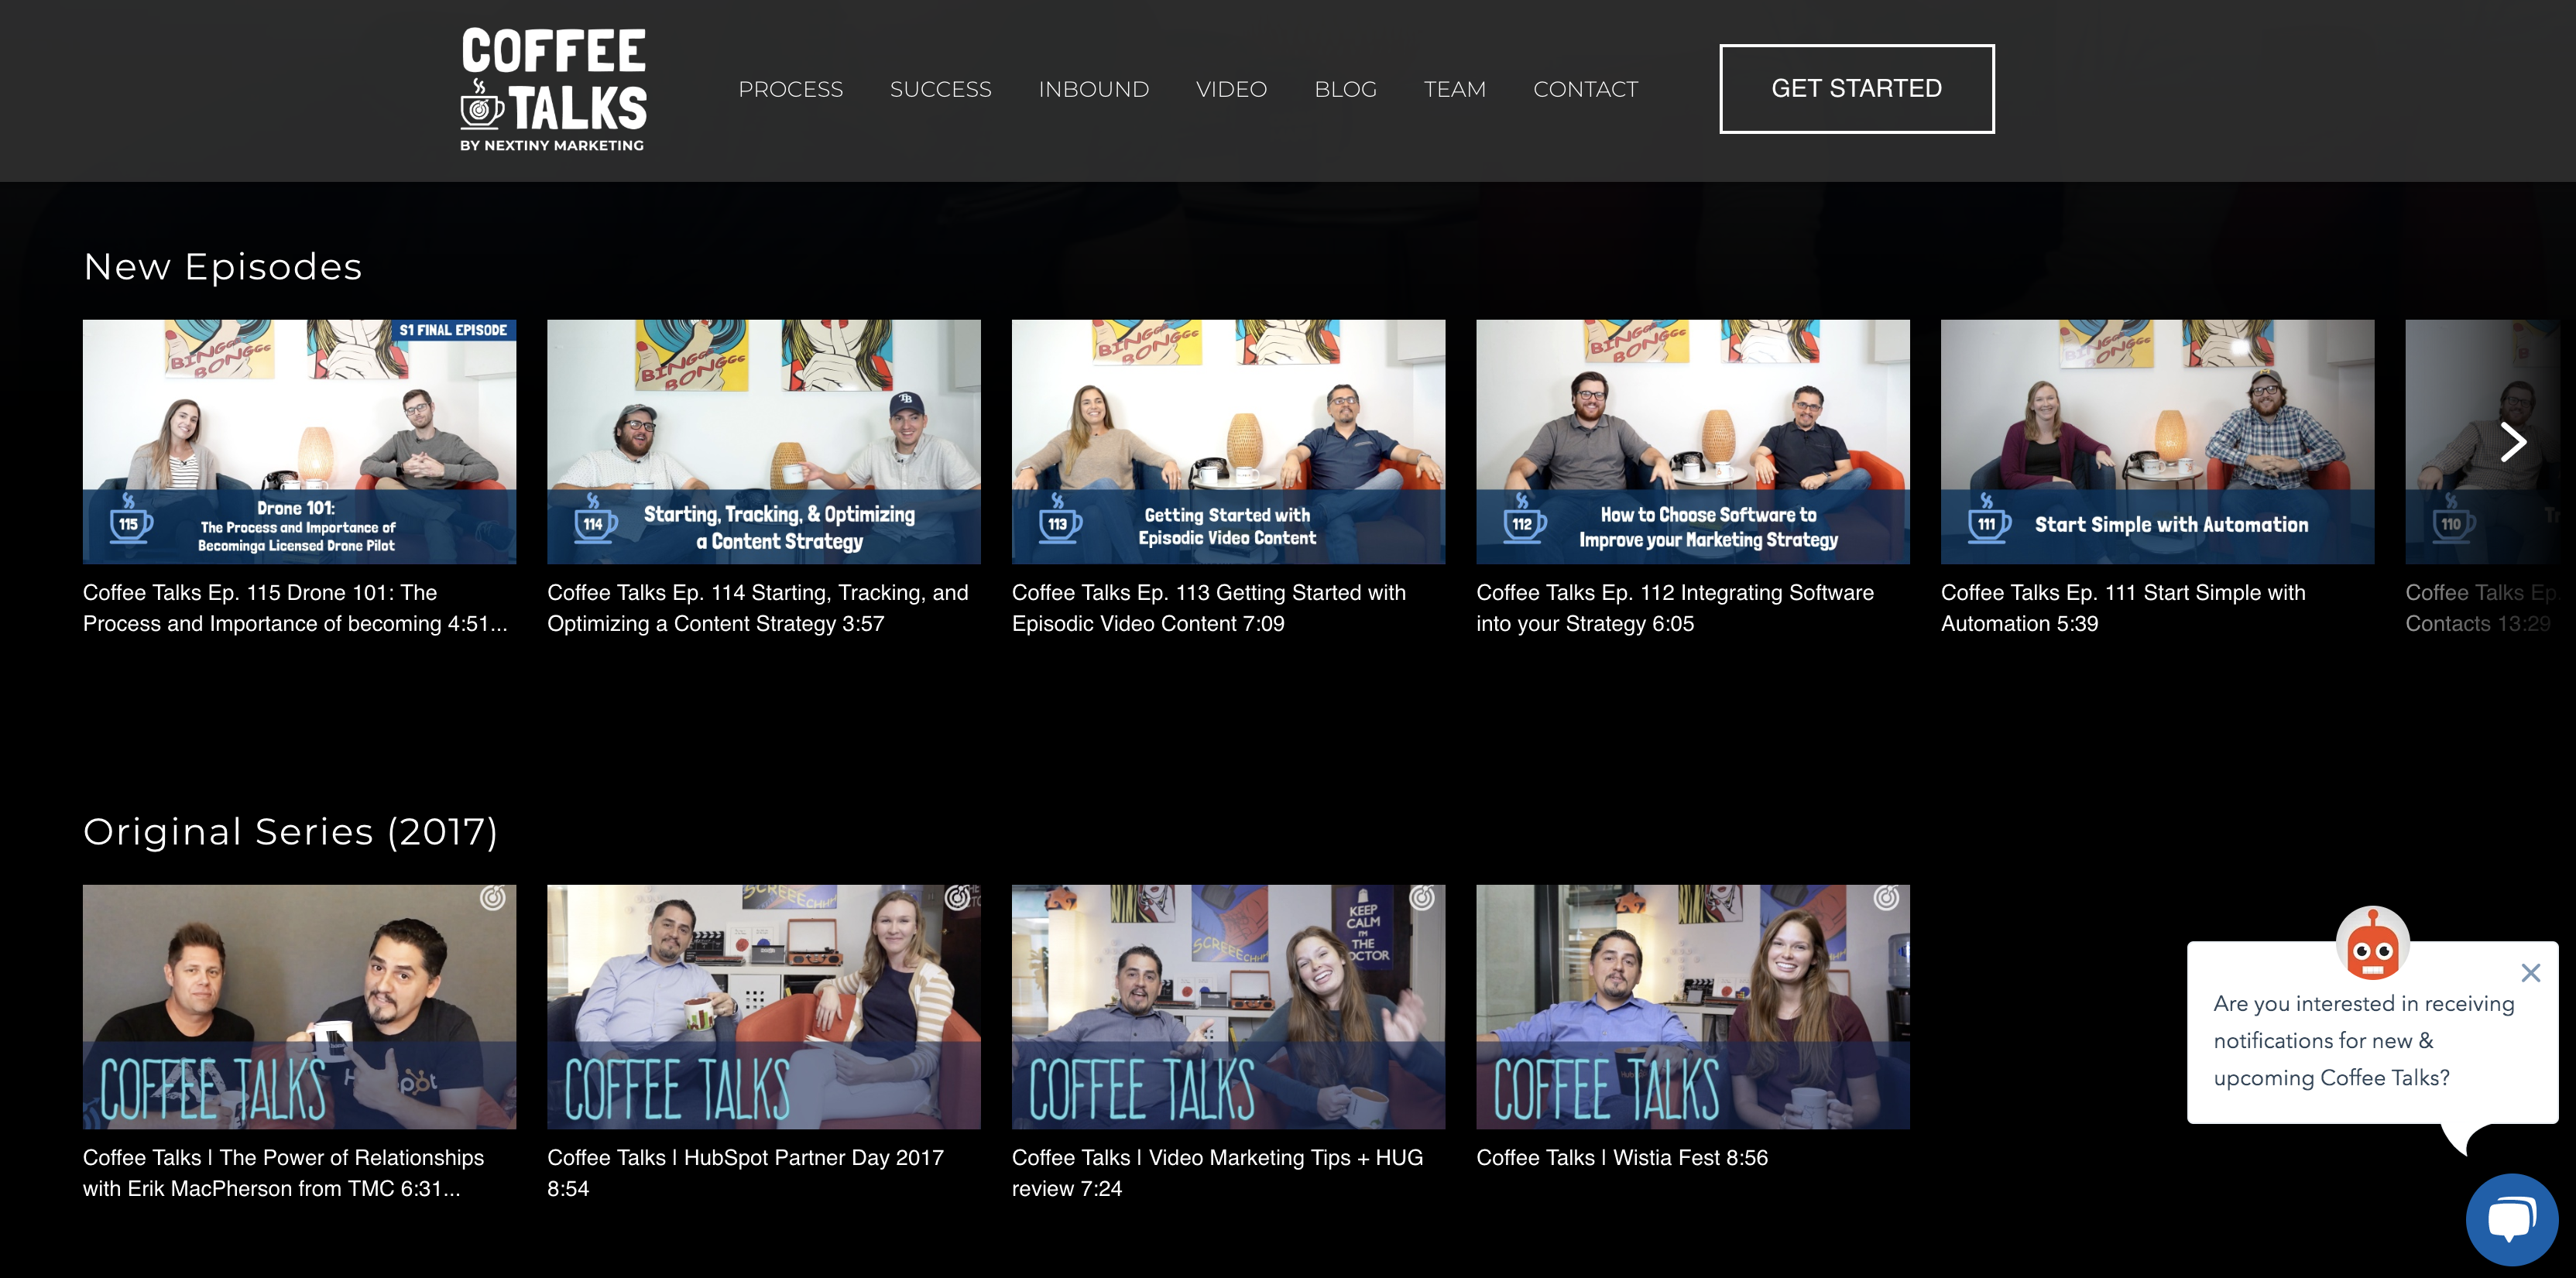 Wistia Channels. Video Gallery in Netflix format. Great for Video SEO